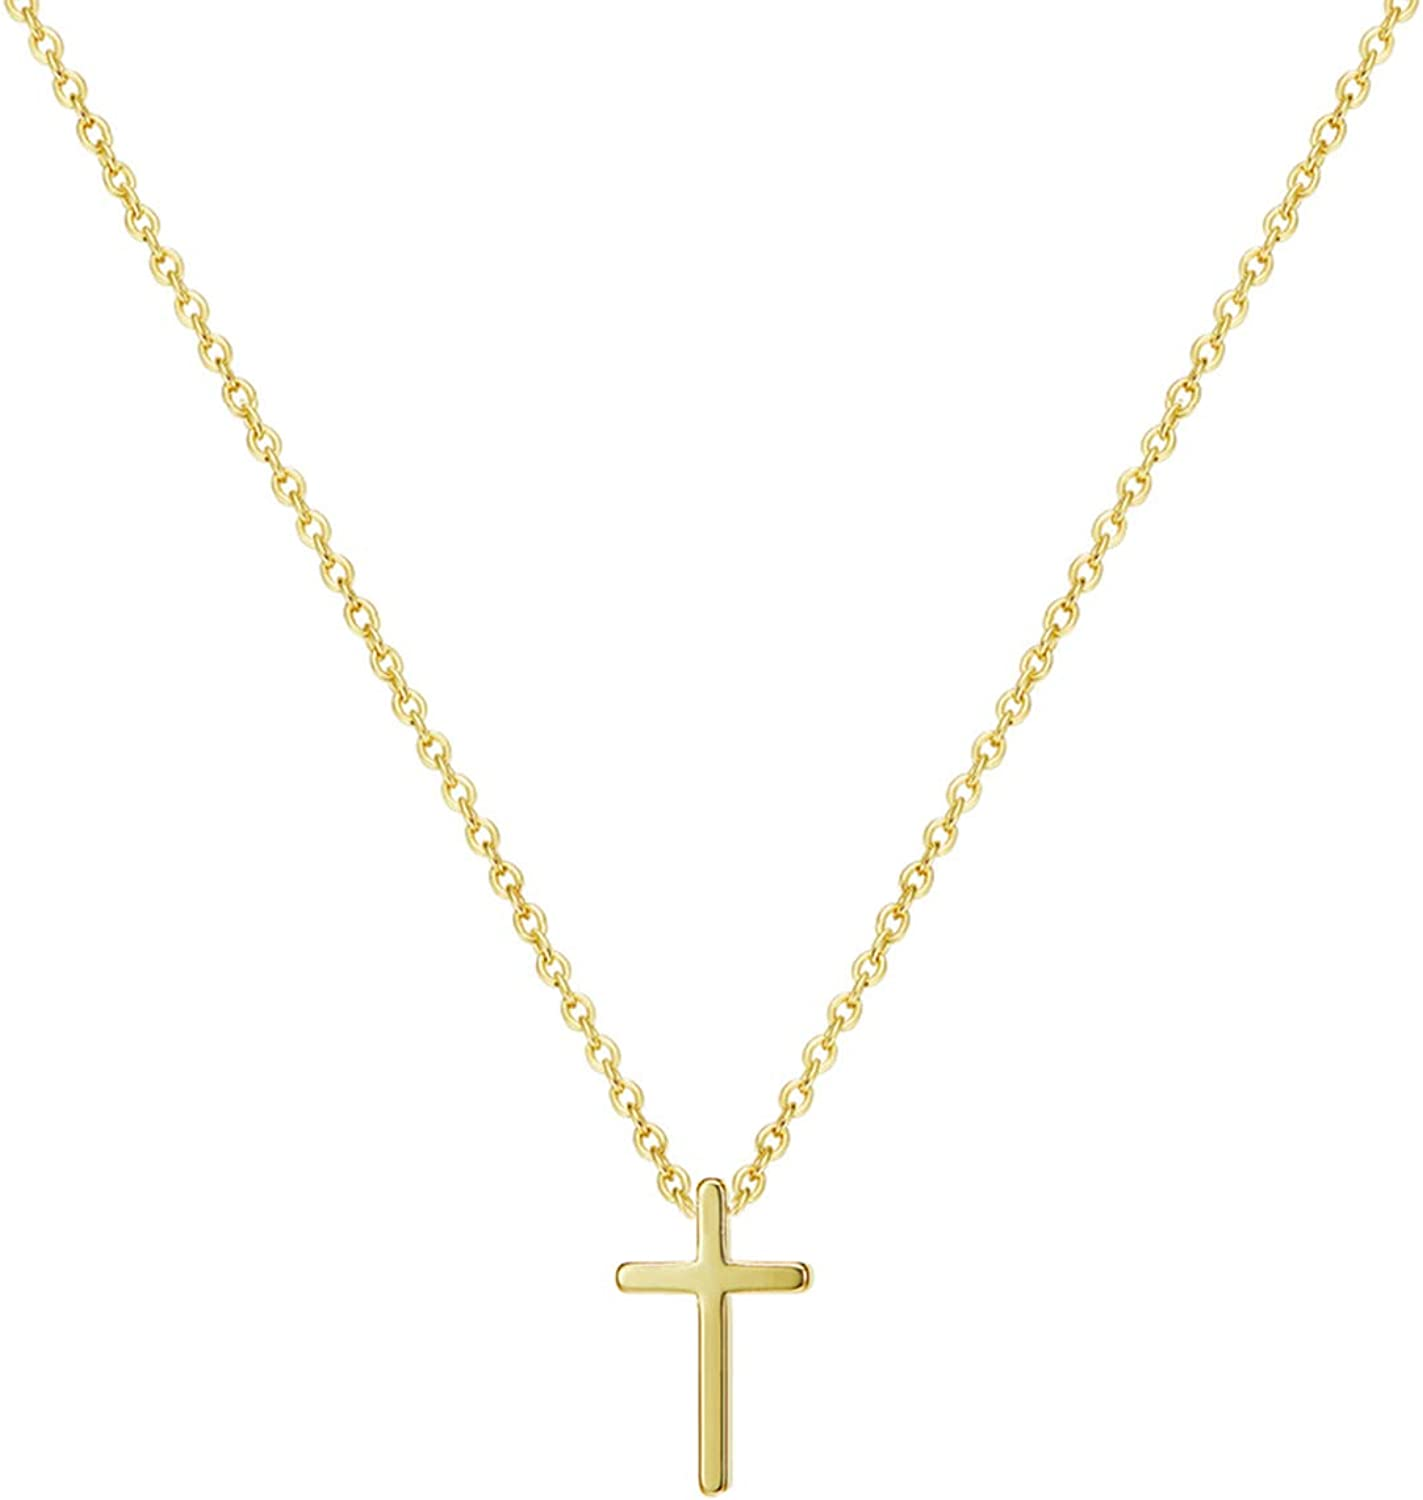 DeScount Tiny Gold Cross Pendant Necklace,18K Gold Plated Minimalist Cross Necklaces for Women